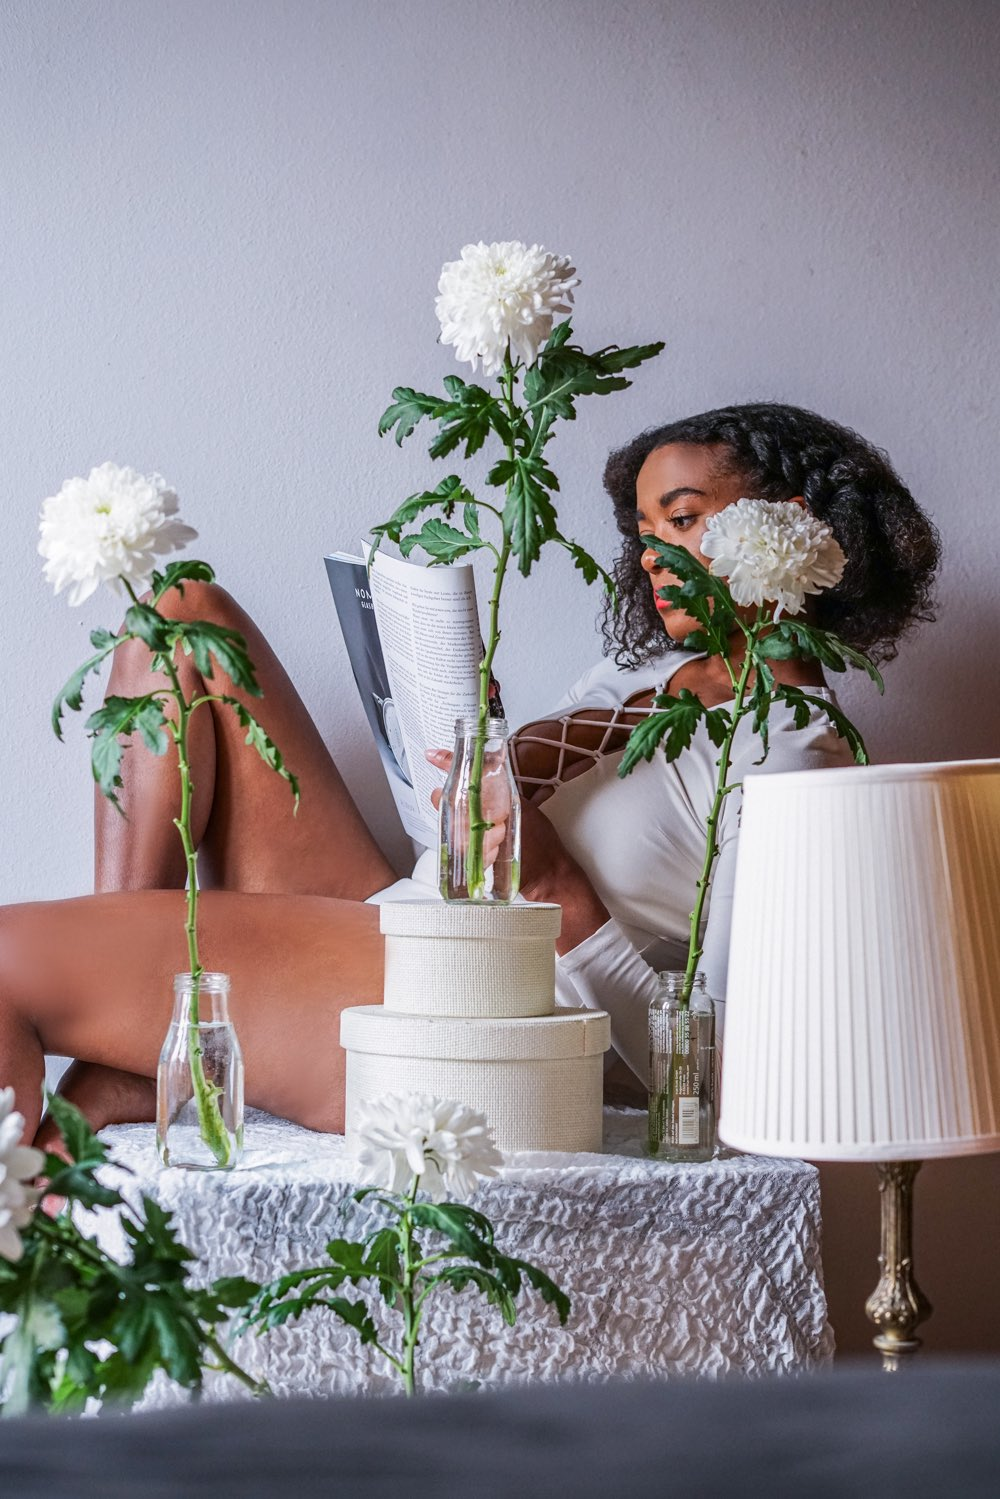 Black Fashion blogger wearing white body flower photography fashion beauty shooting